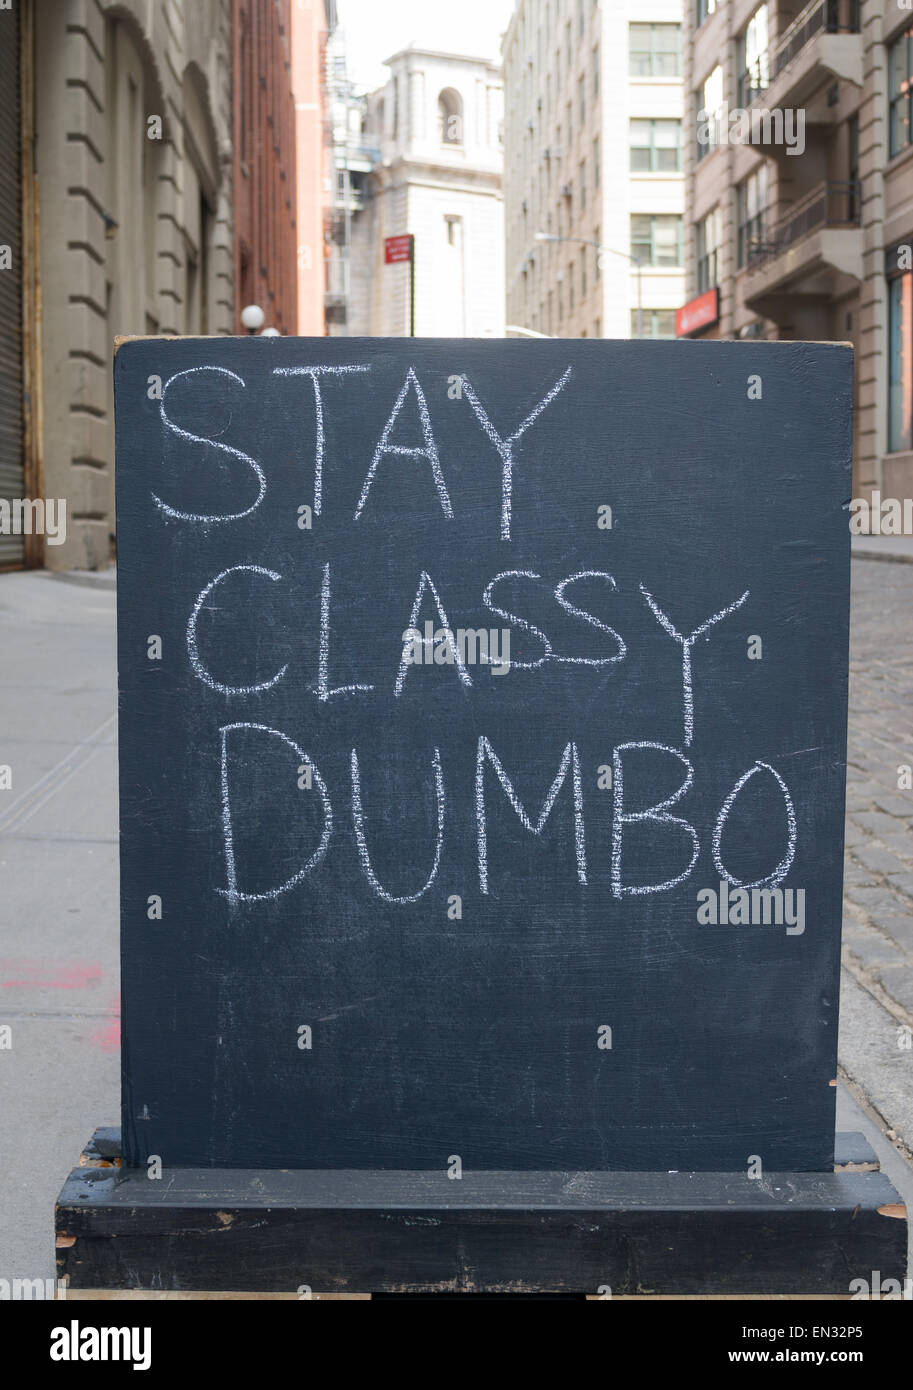 Sign, Stay Classy DUMBO, Brooklyn, NYC, USA - Stock Image